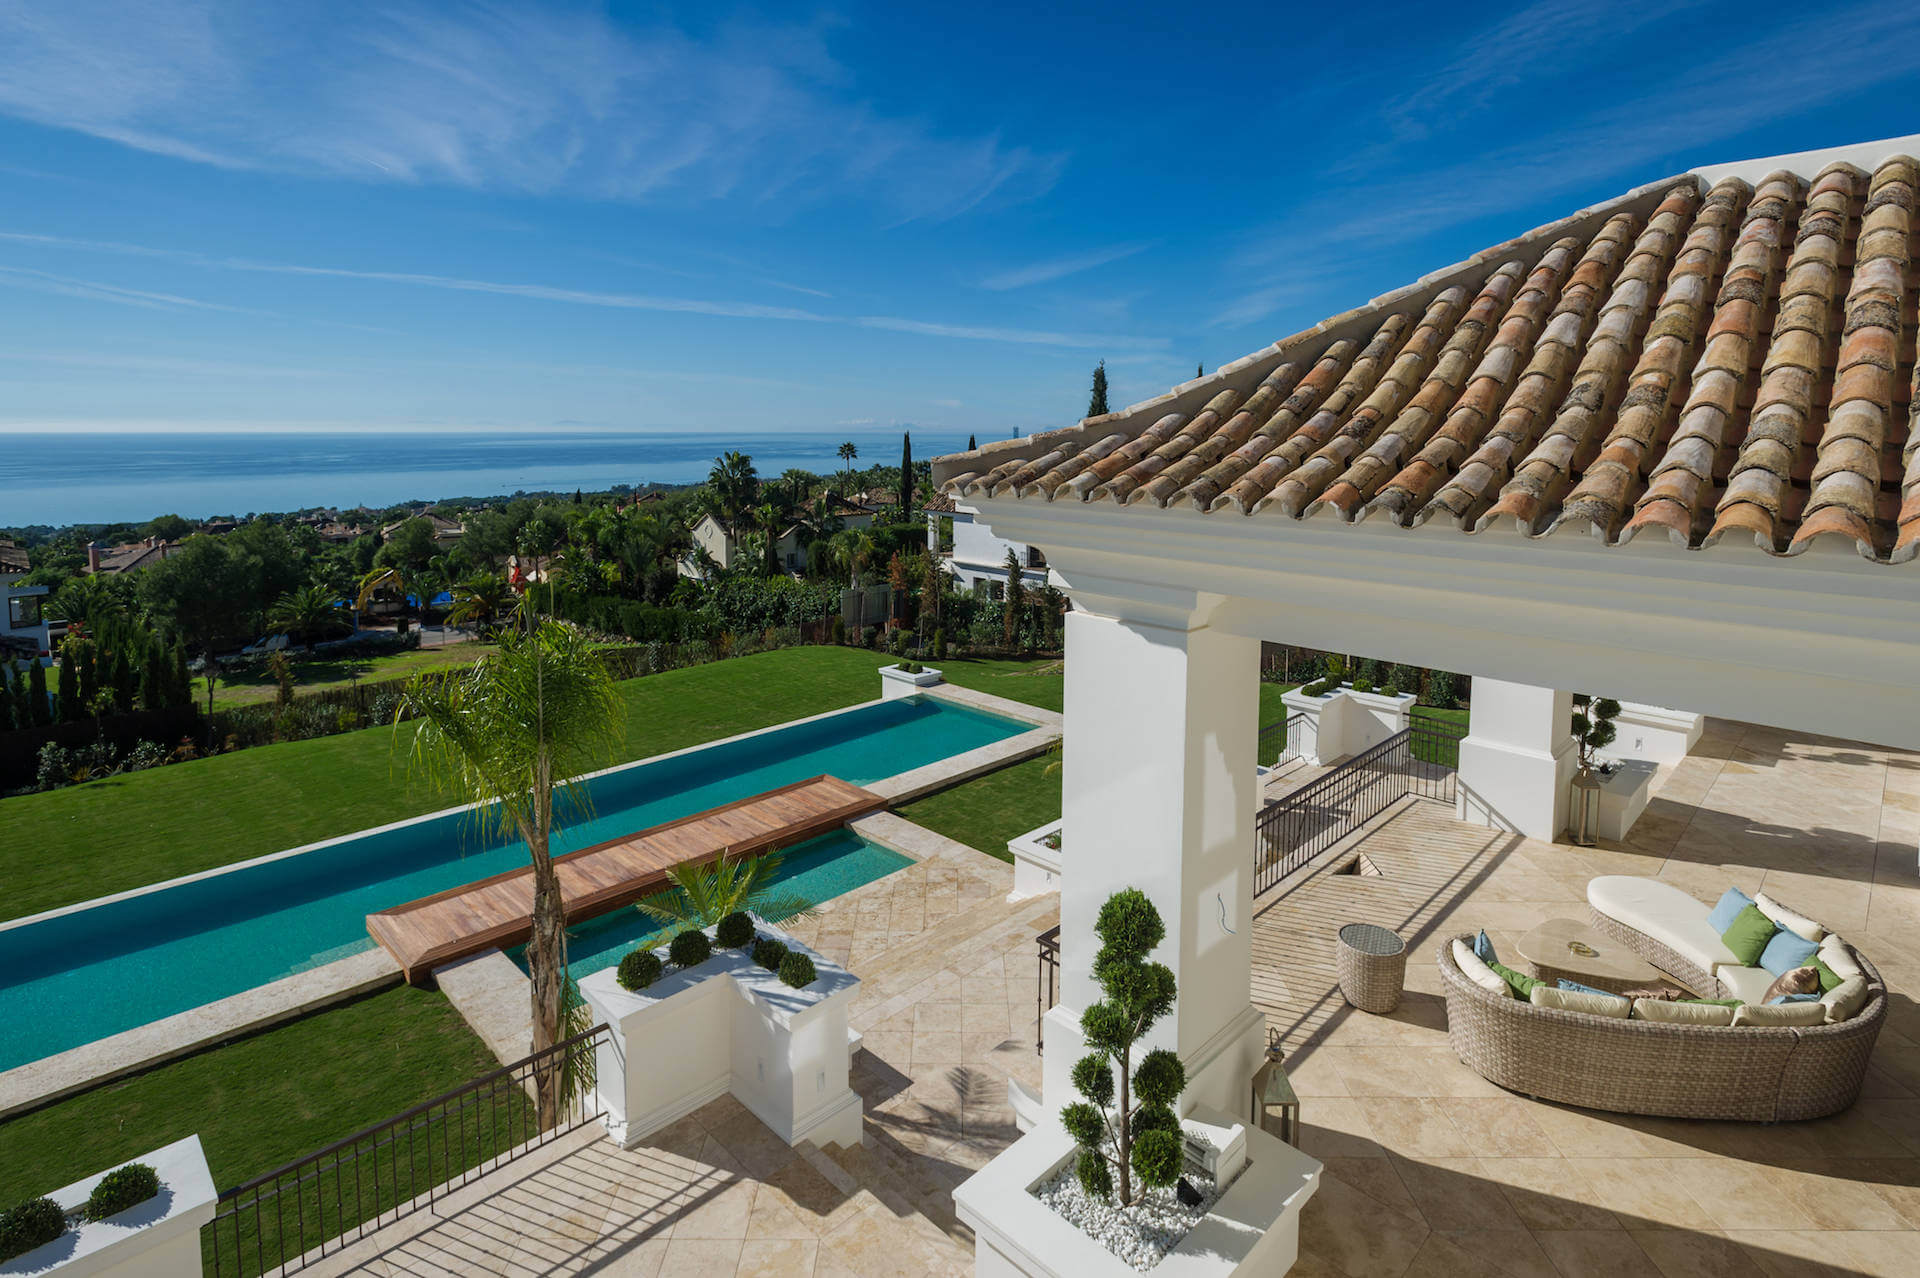 Sierra Blanca: Private exclusivity at the heart of Marbella